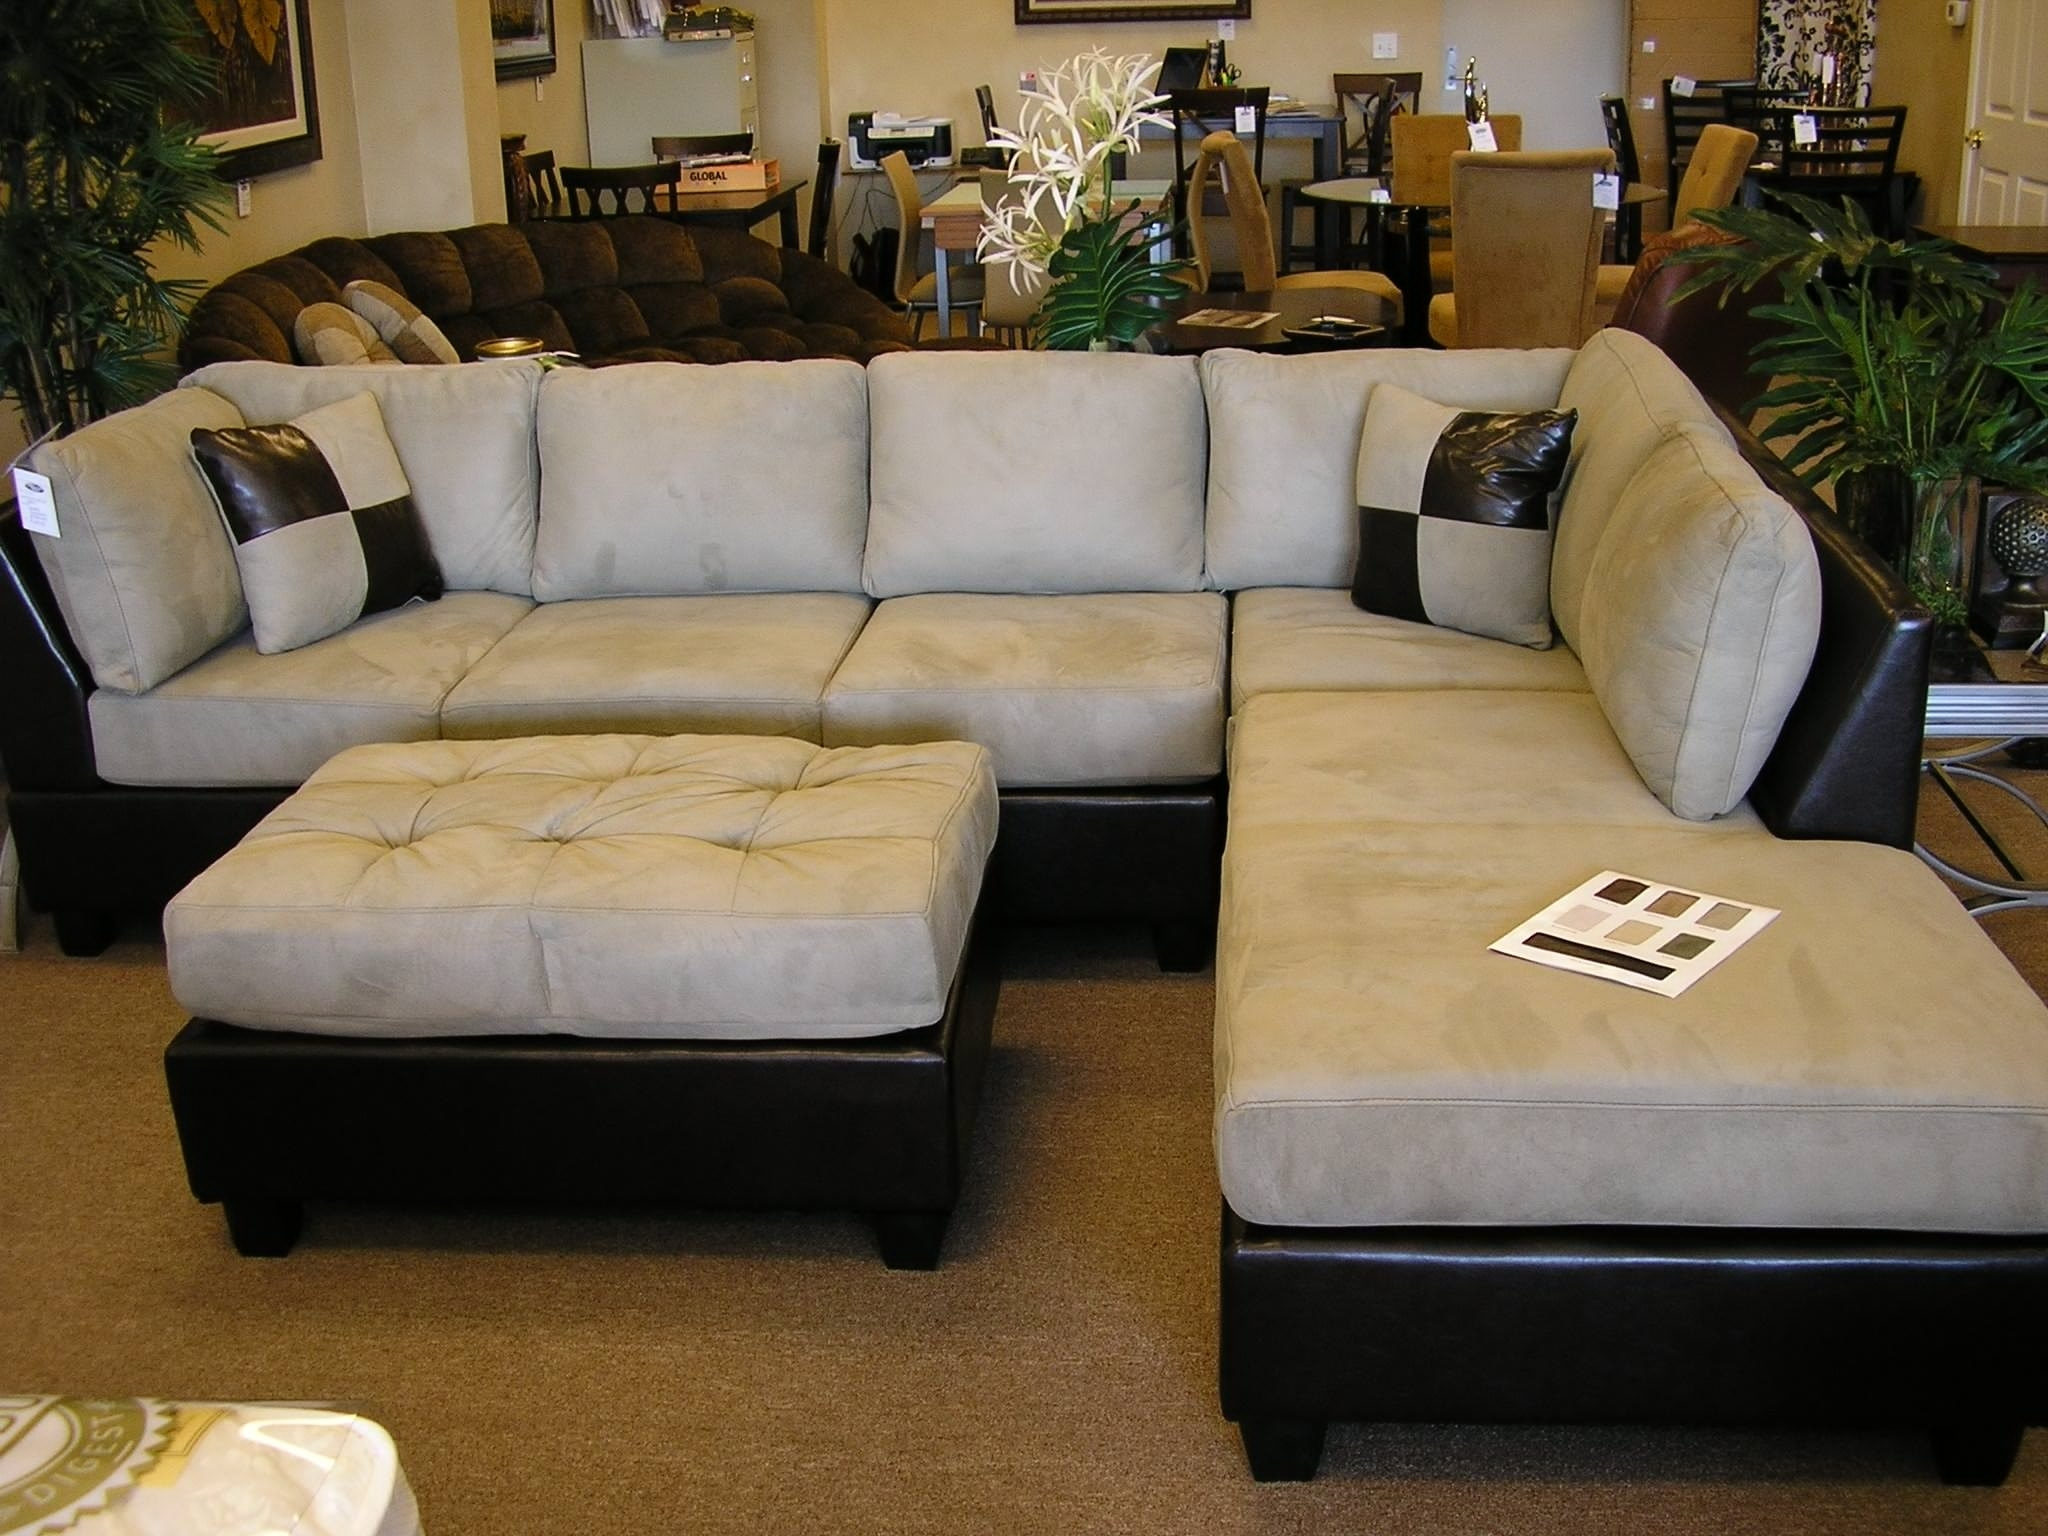 Sectional Sofa Design: Sectional Sofas With Chaise Lounge Cheap Pertaining To Sectional Sofas With Chaise Lounge And Ottoman (Image 9 of 10)